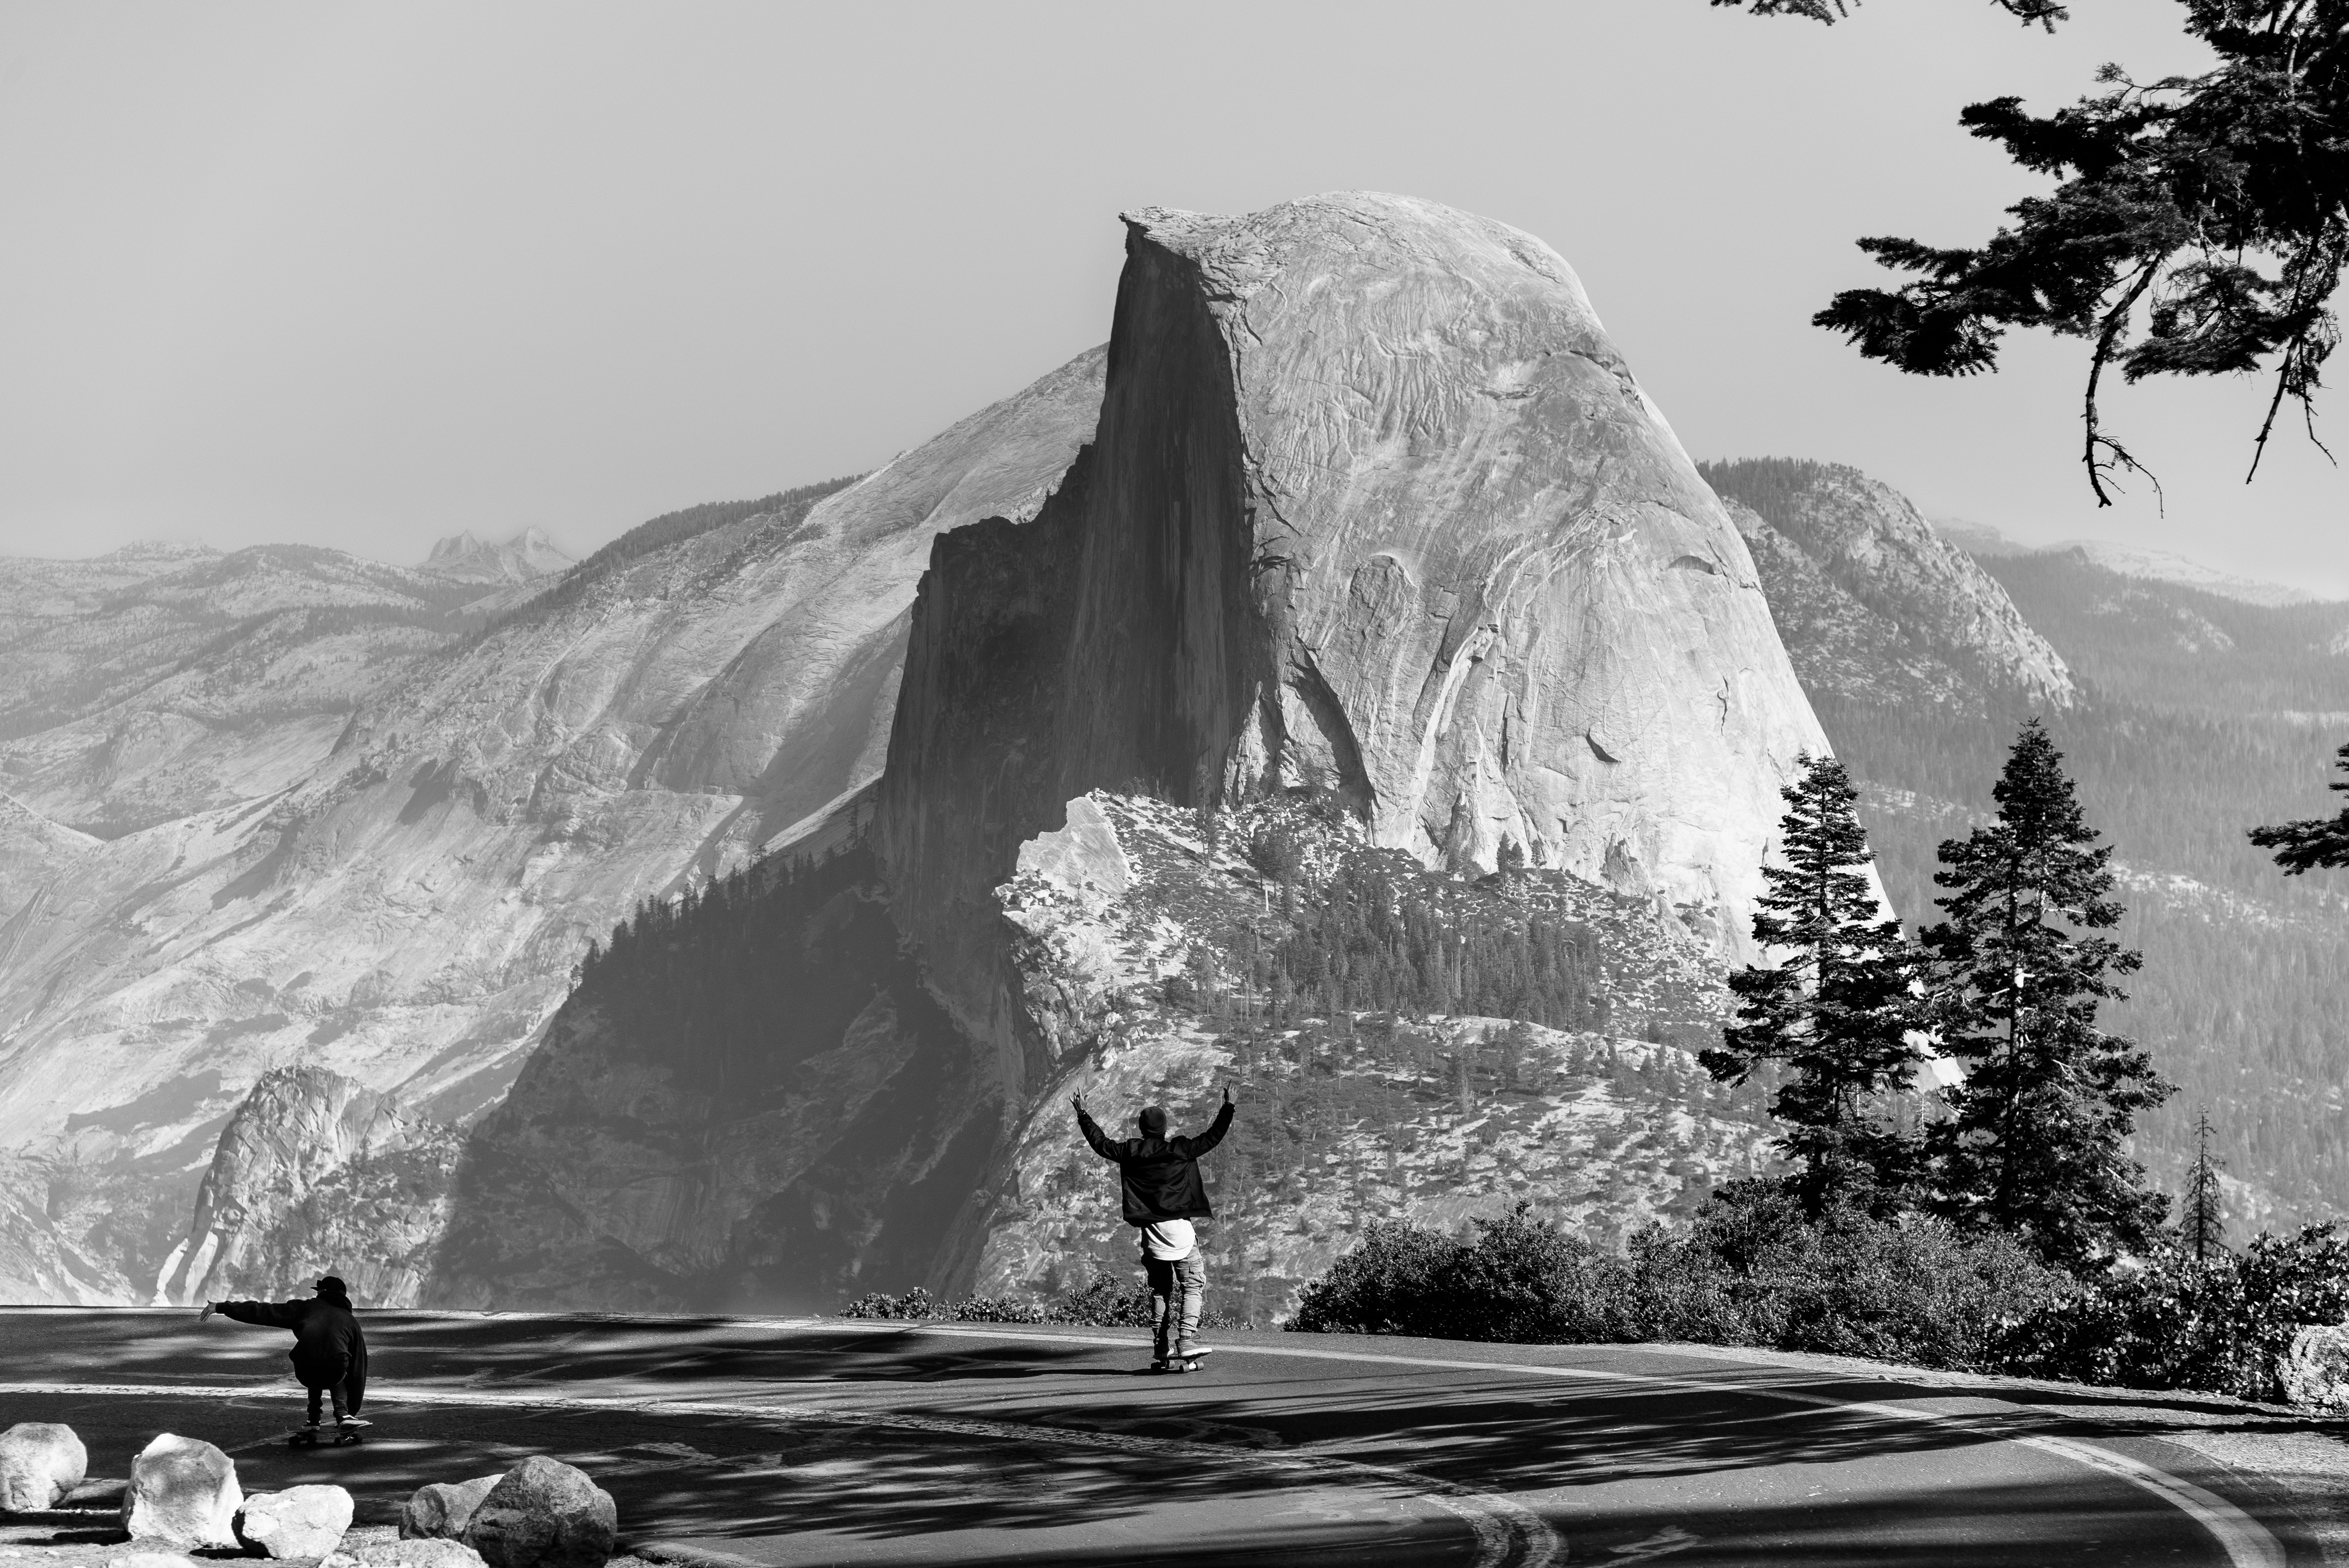 Waiting for the sun to set over Half Dome, it seemed like the perfect time to go for a ride. Luckily this was not a crowded day on Glacier Point so we were able to take a few laps around this scenic turn.